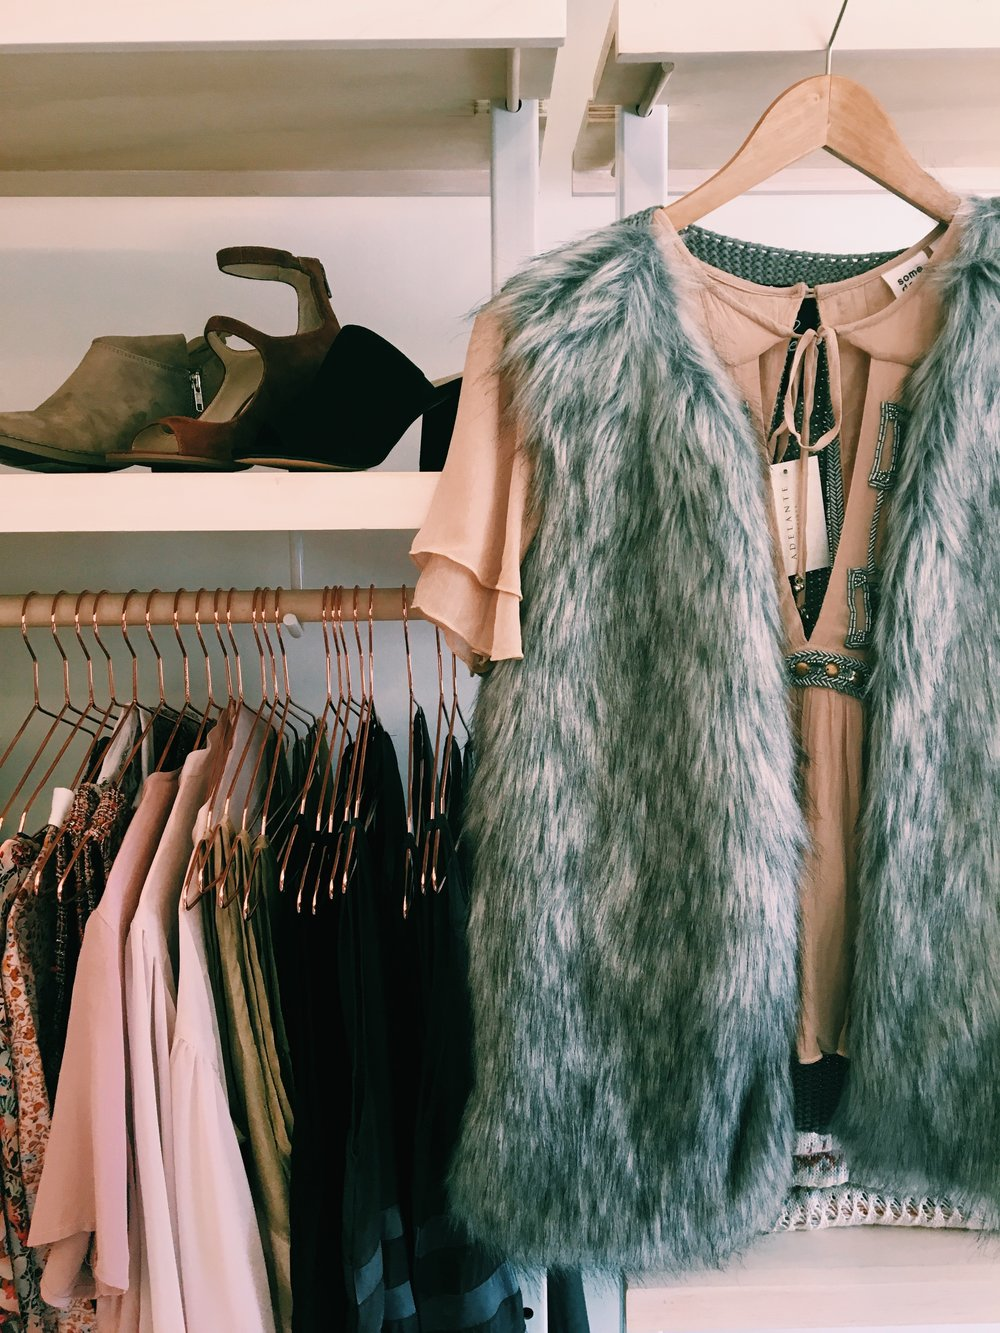 Bring some style to your 2019 wardrobe with a trip to Adelante Boutique at Le Garage Sale.